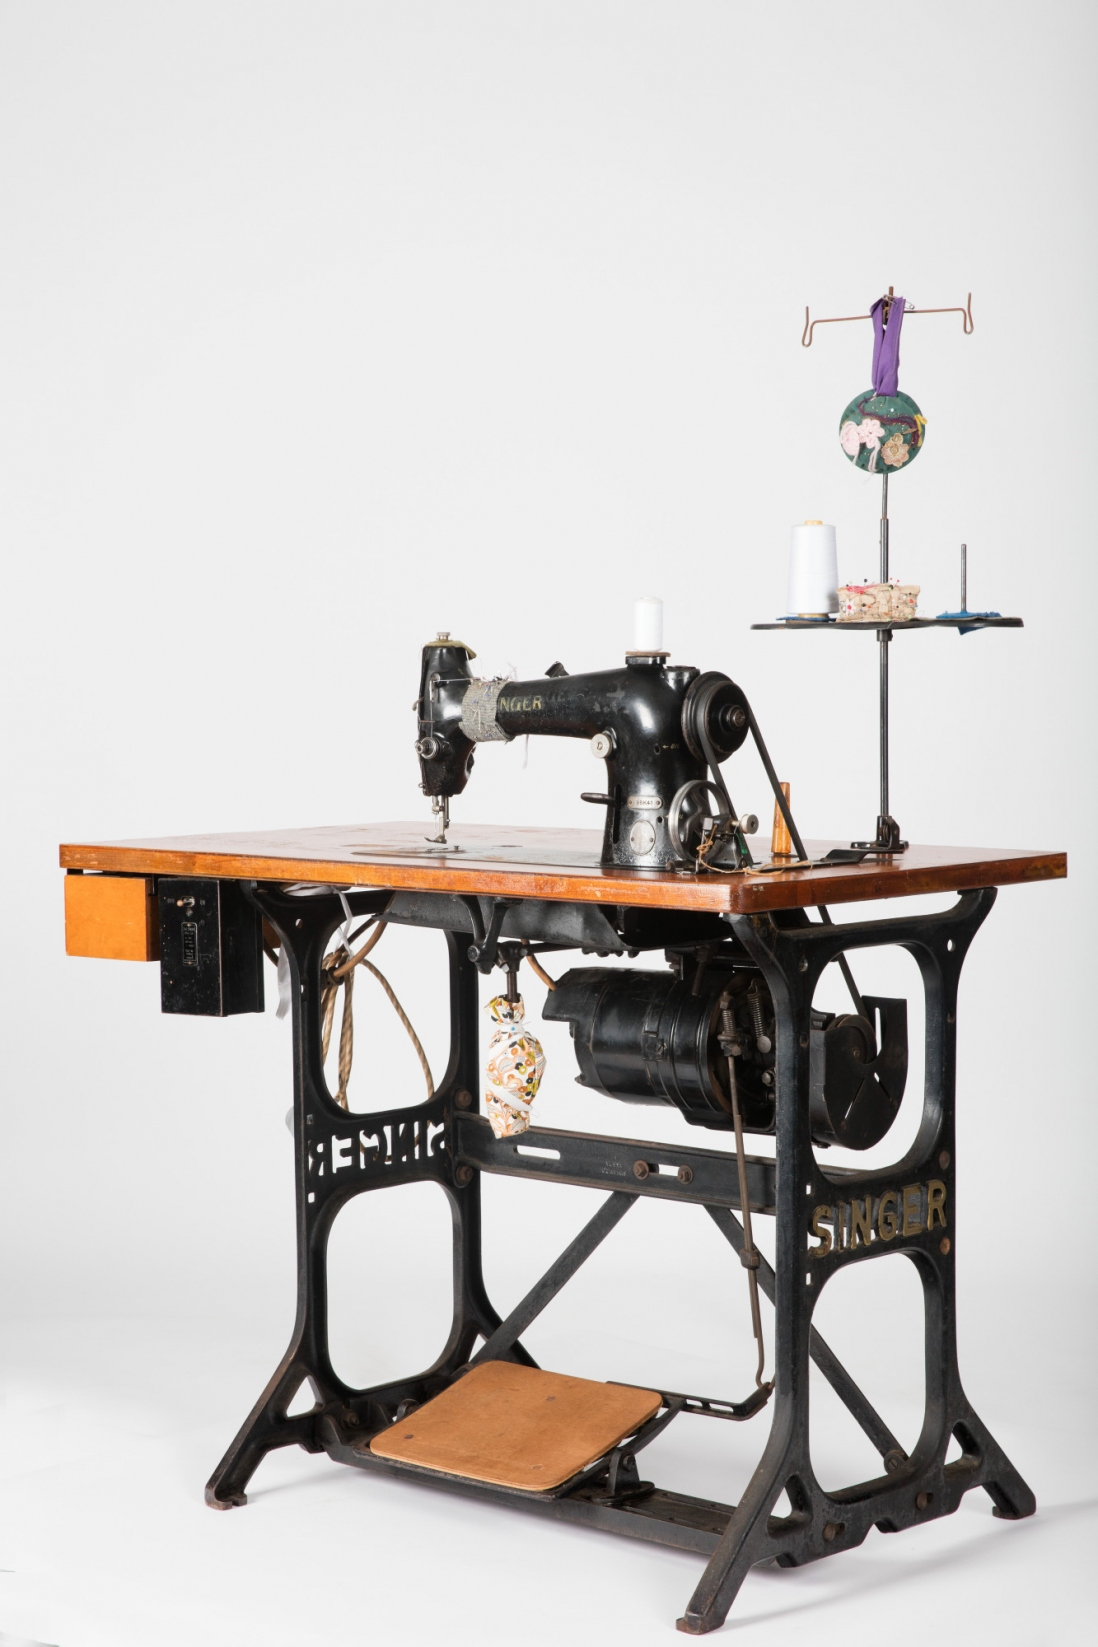 Metal framed sewing machine table with machine embedded.